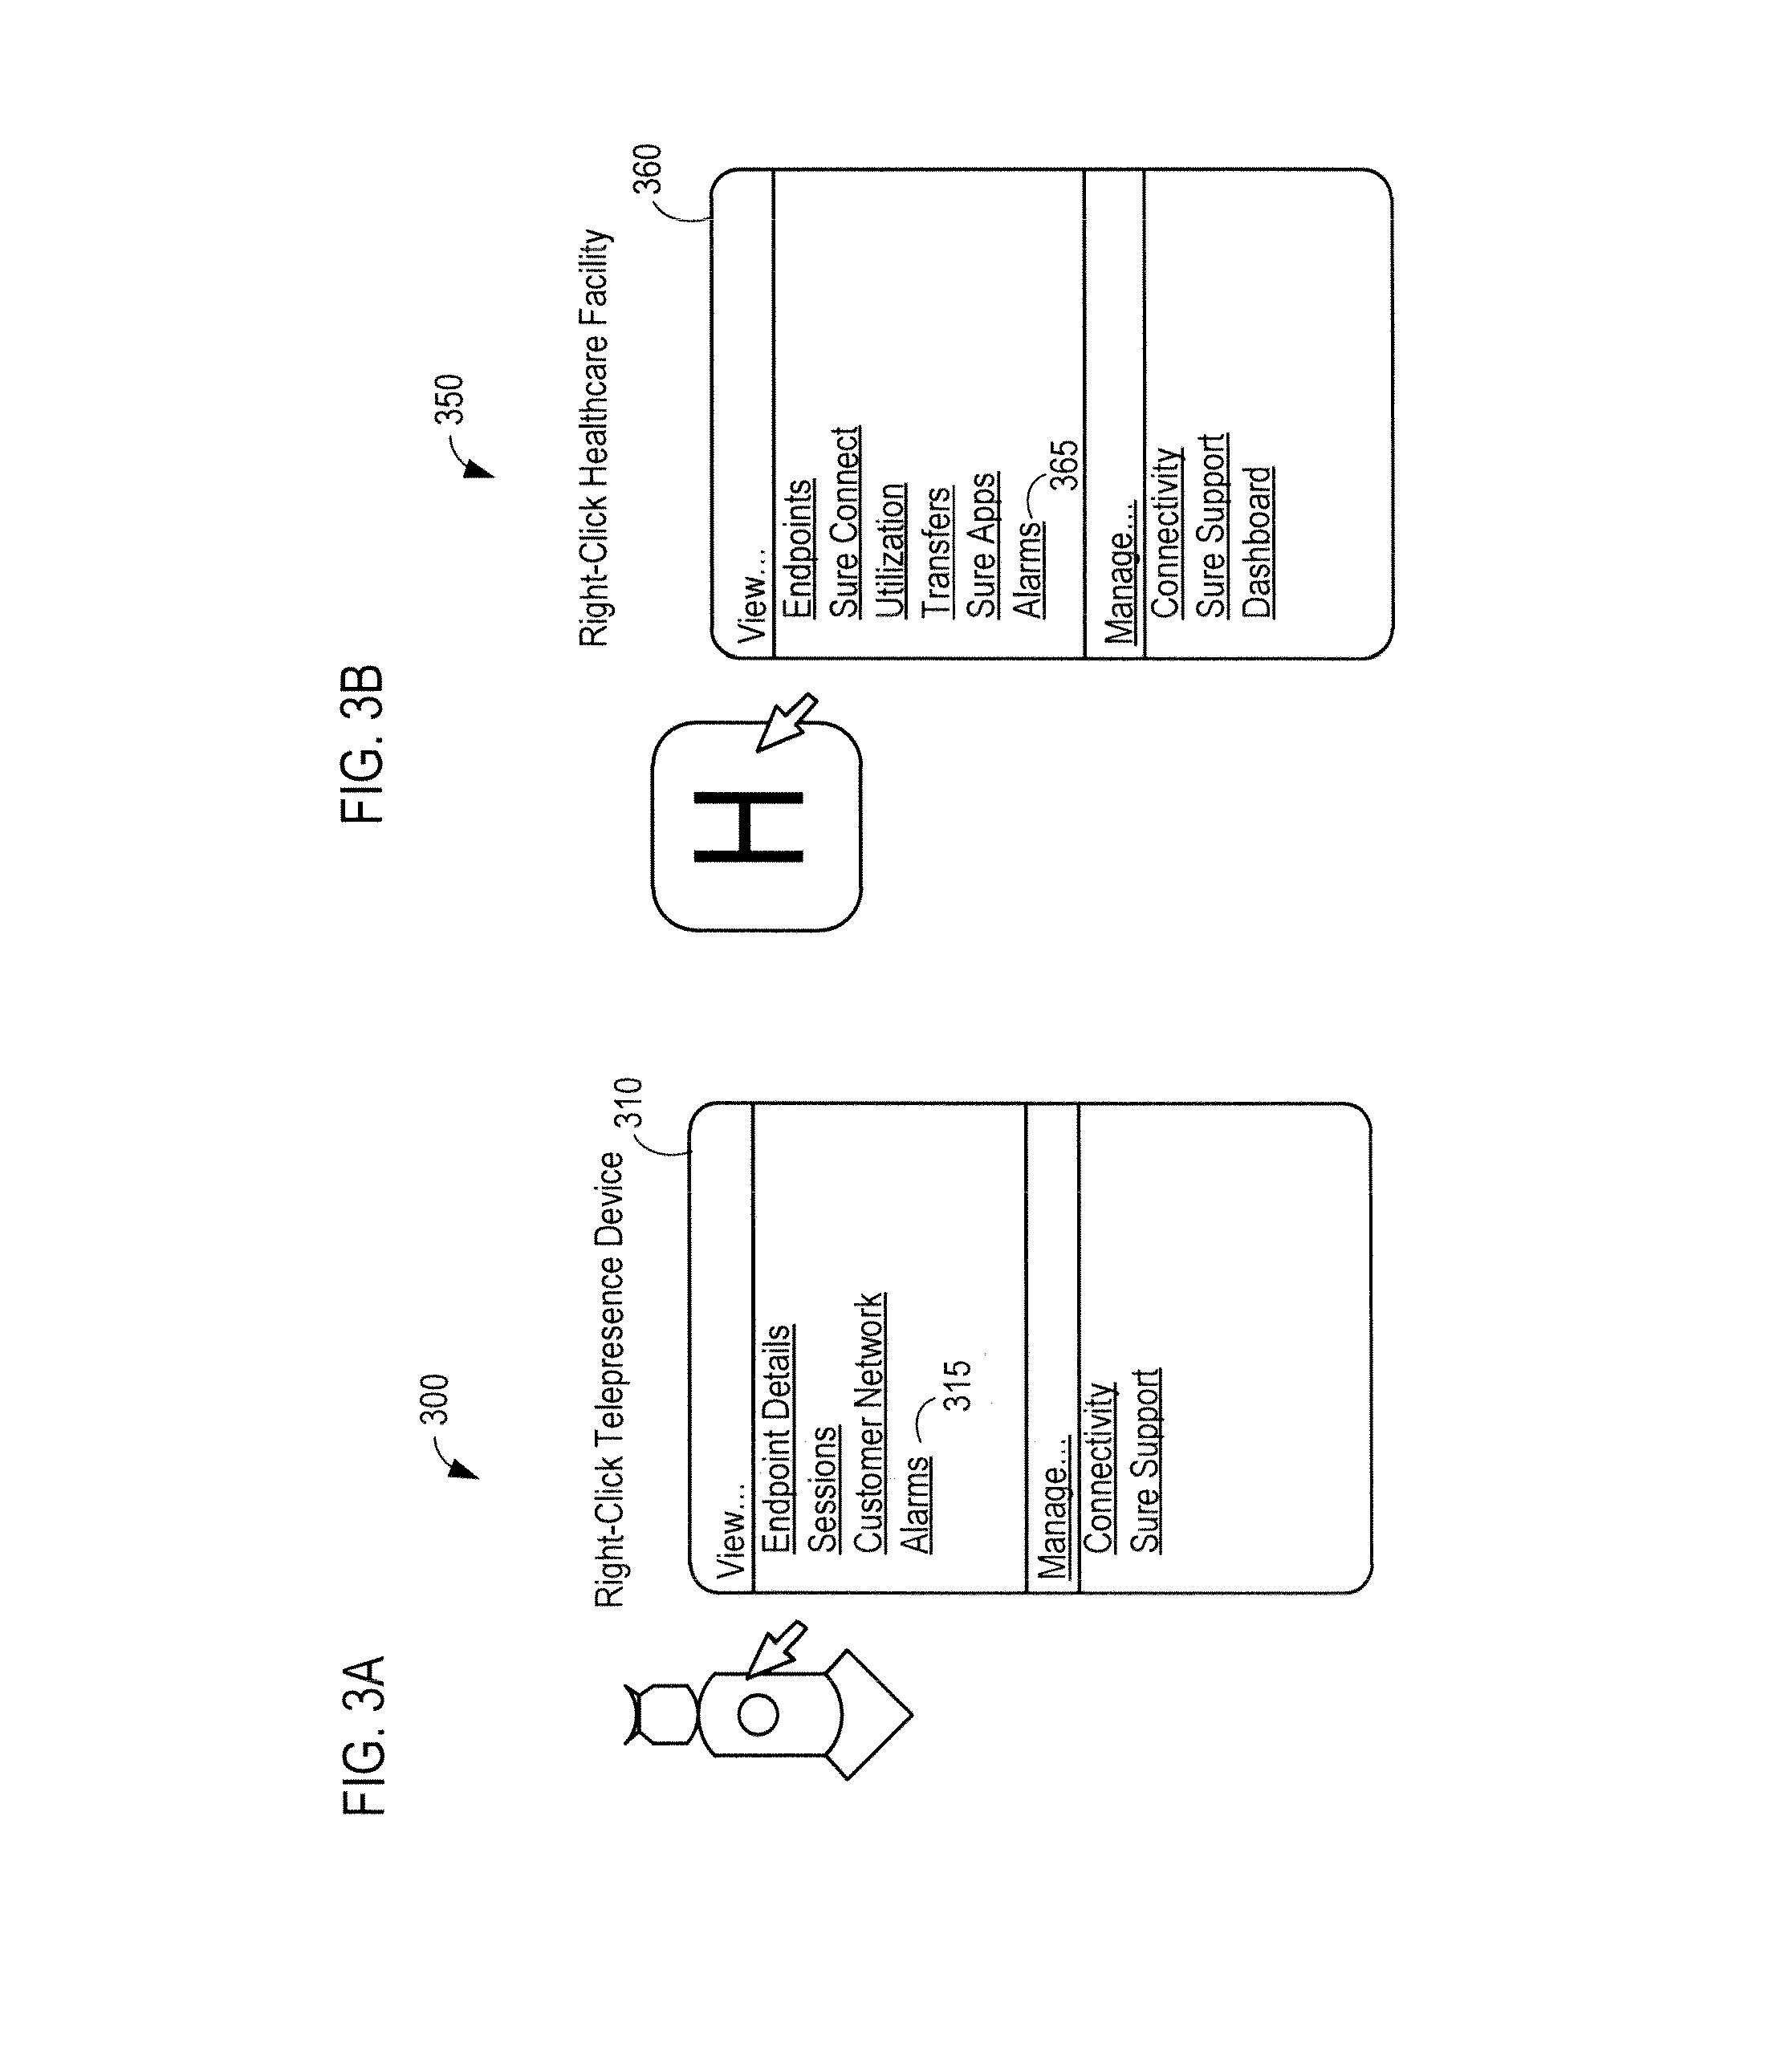 Patent Us 9974612 B2 Trend Wiring Diagram Vga Connector Ceiling Rose